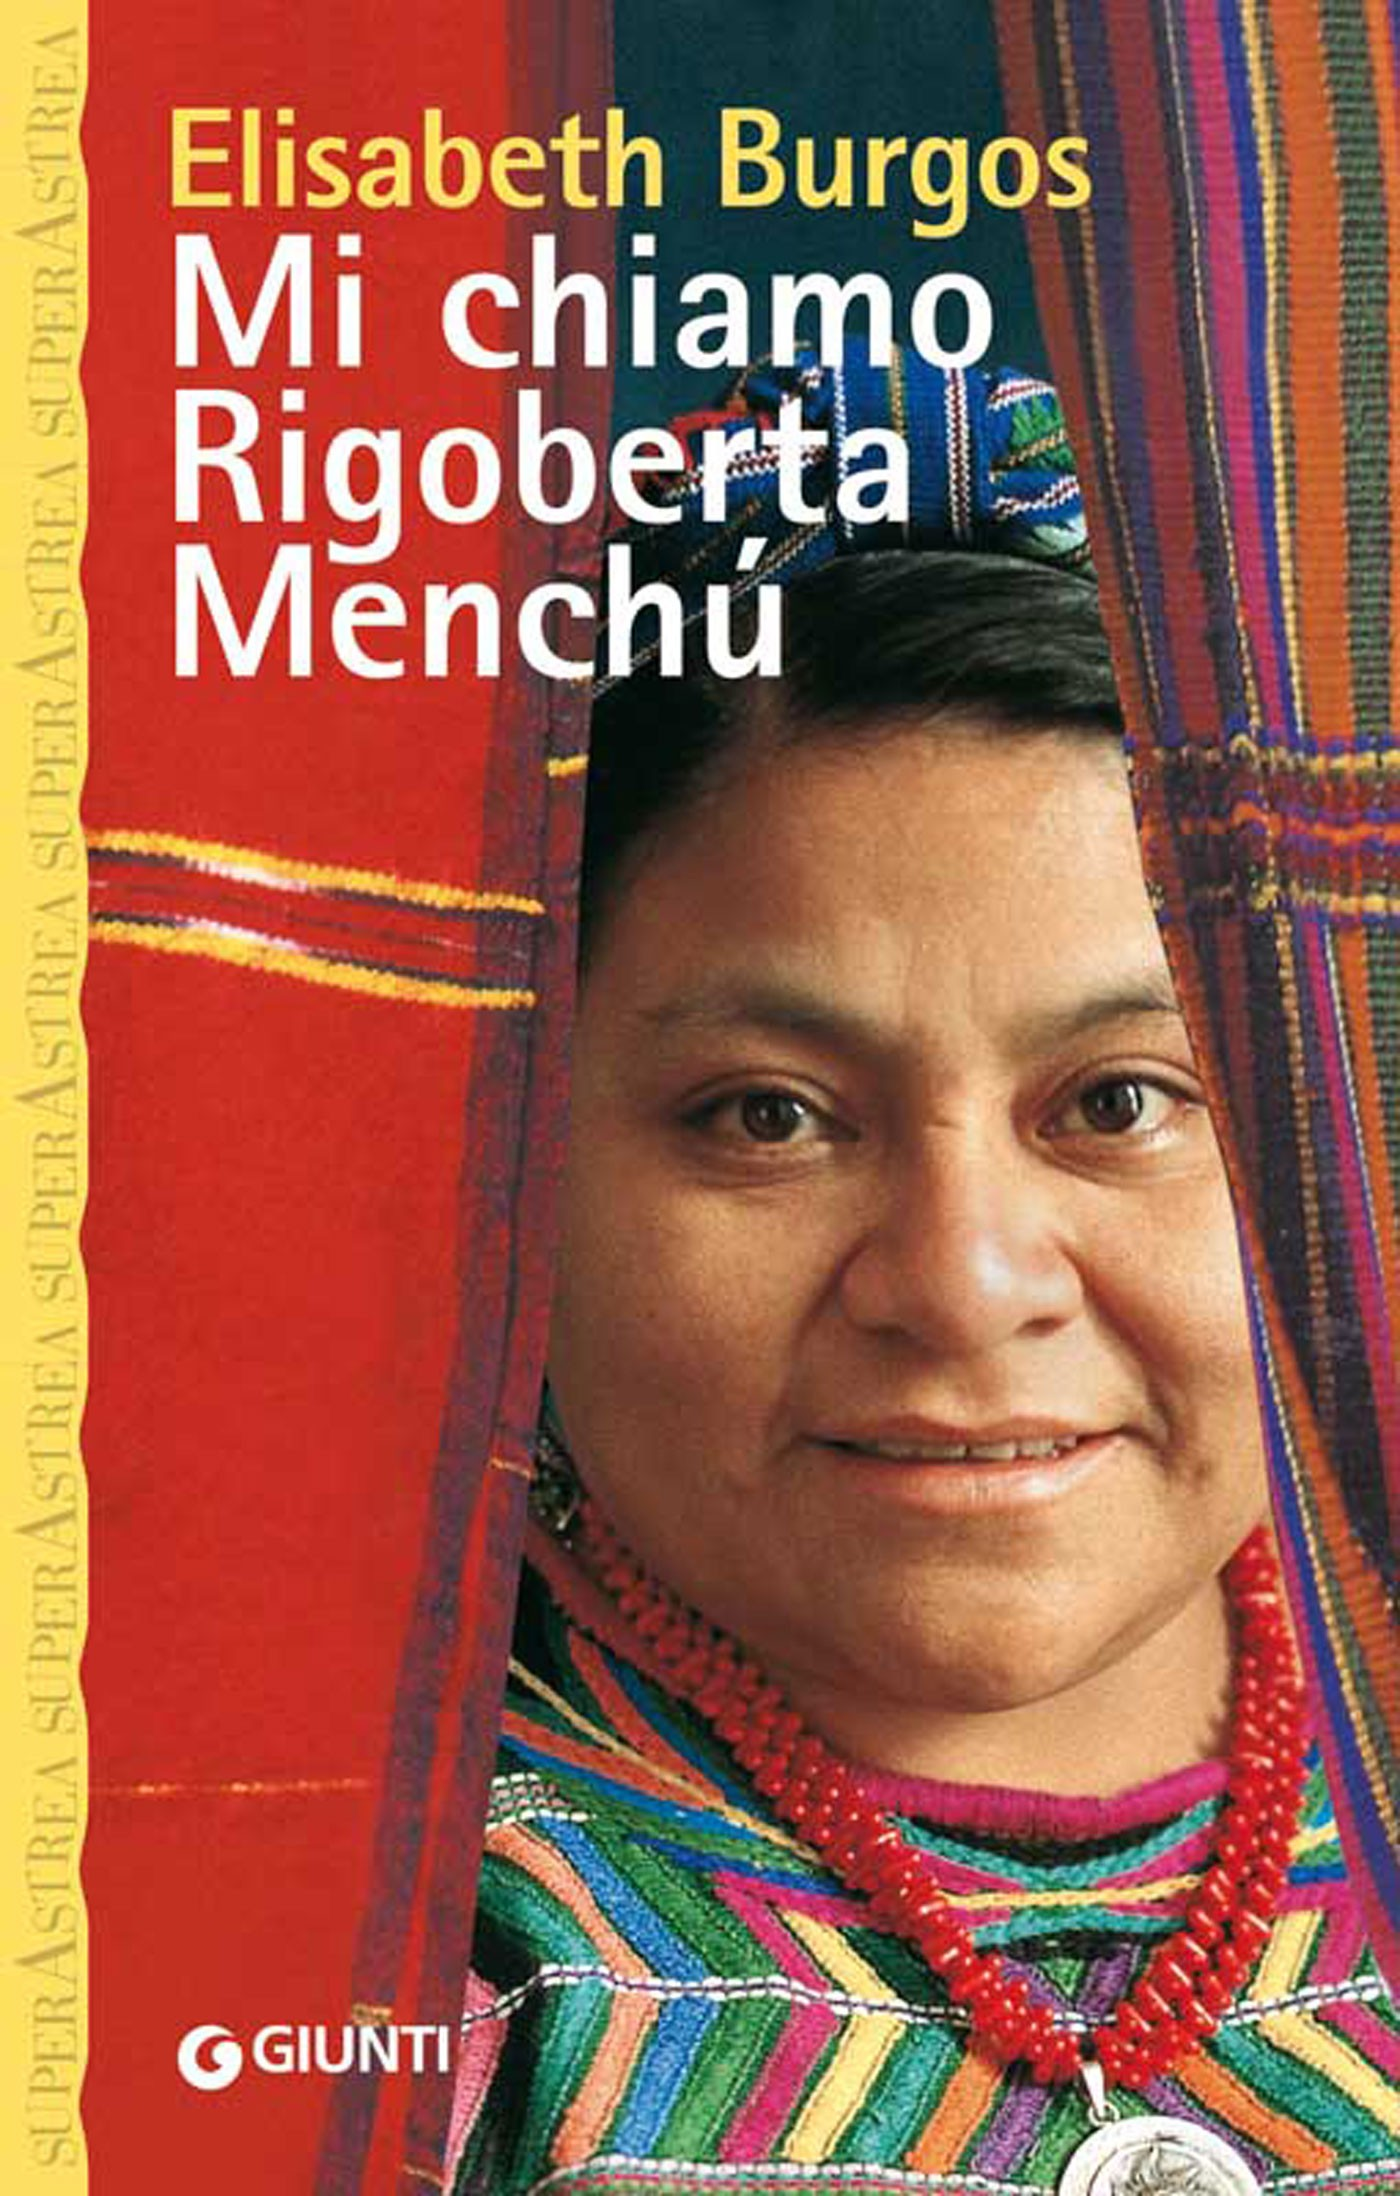 reflection on i rigoberta menchu essay